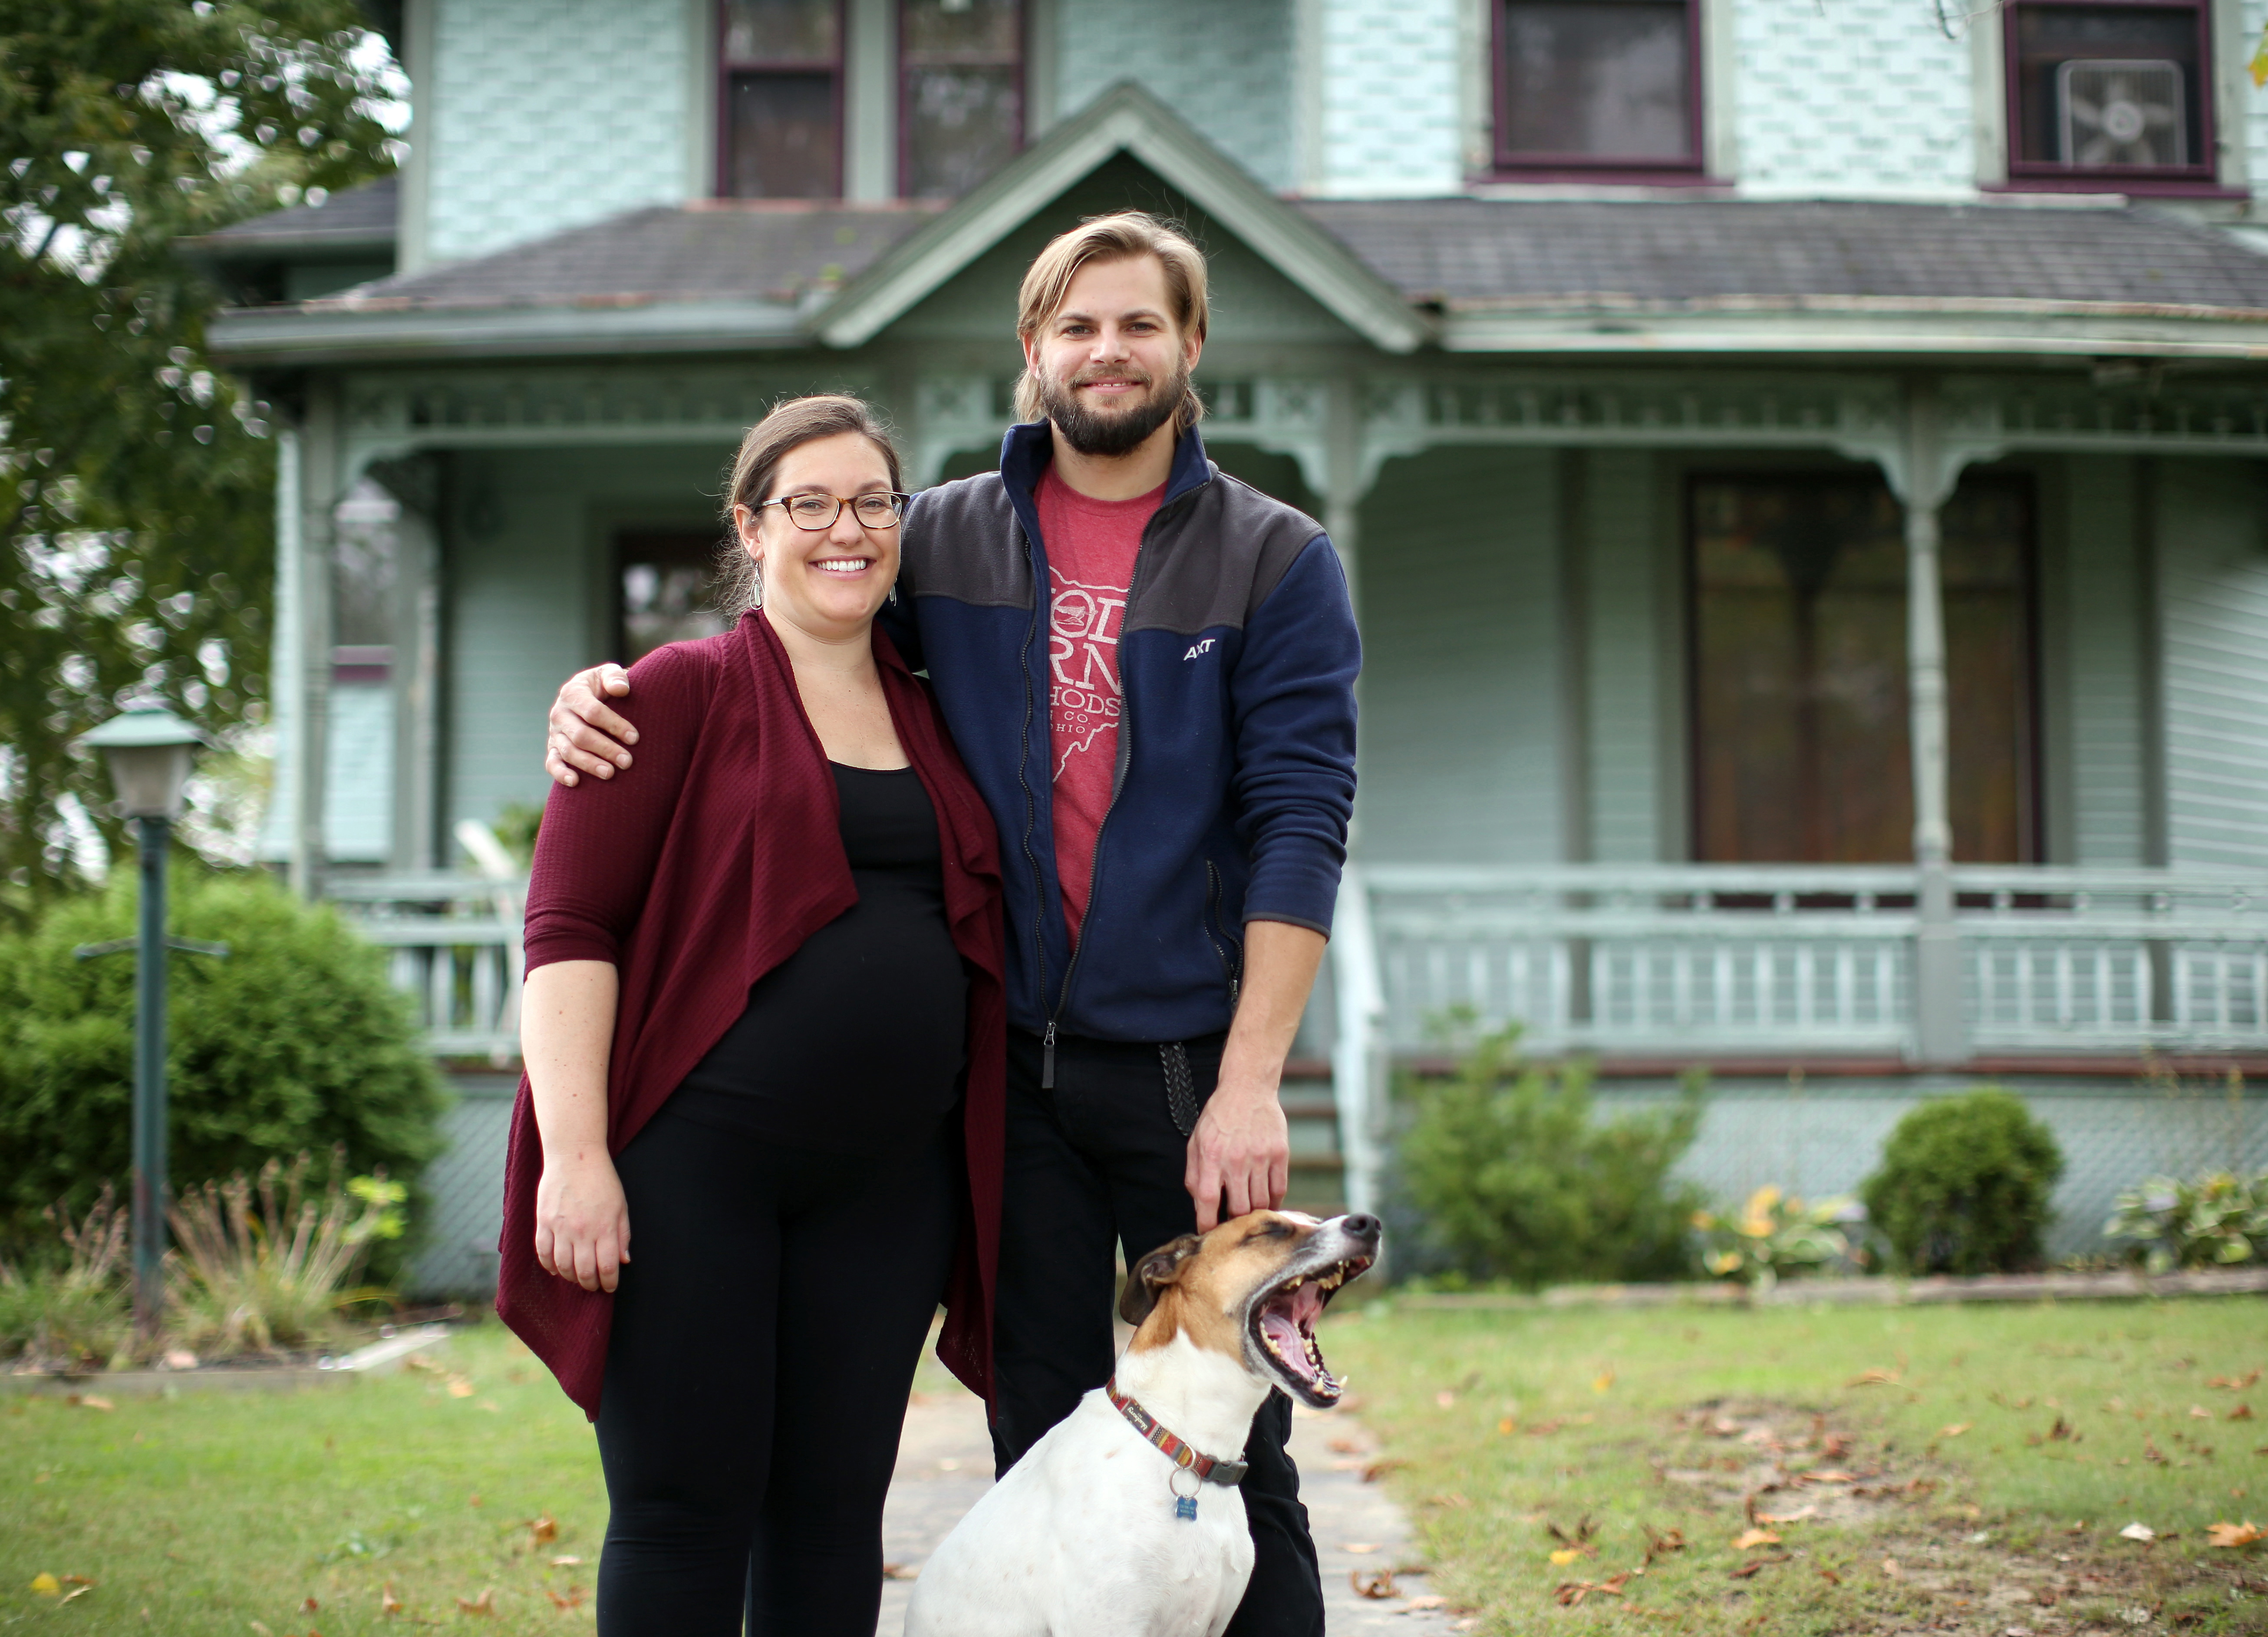 Sarah Braun and Adam Keck in front of their Victorian home in Warren, Ohio